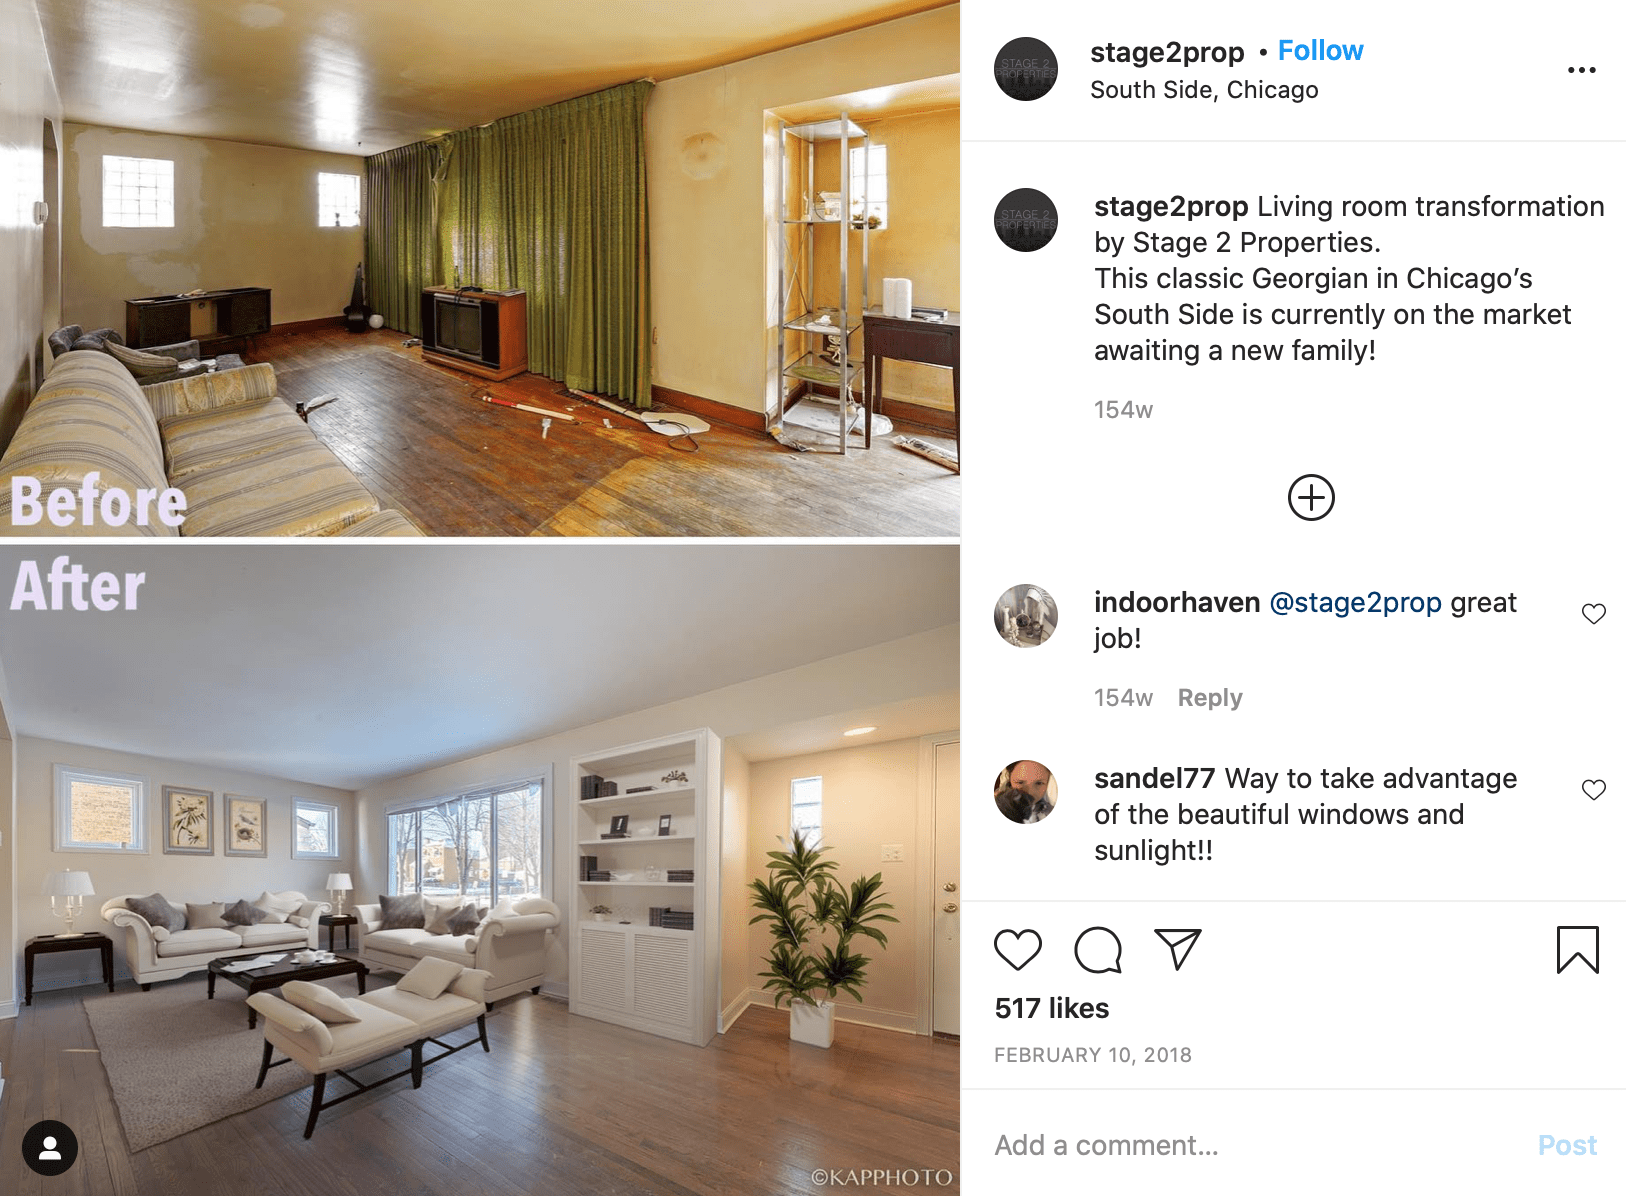 real estate instagram accounts before and after